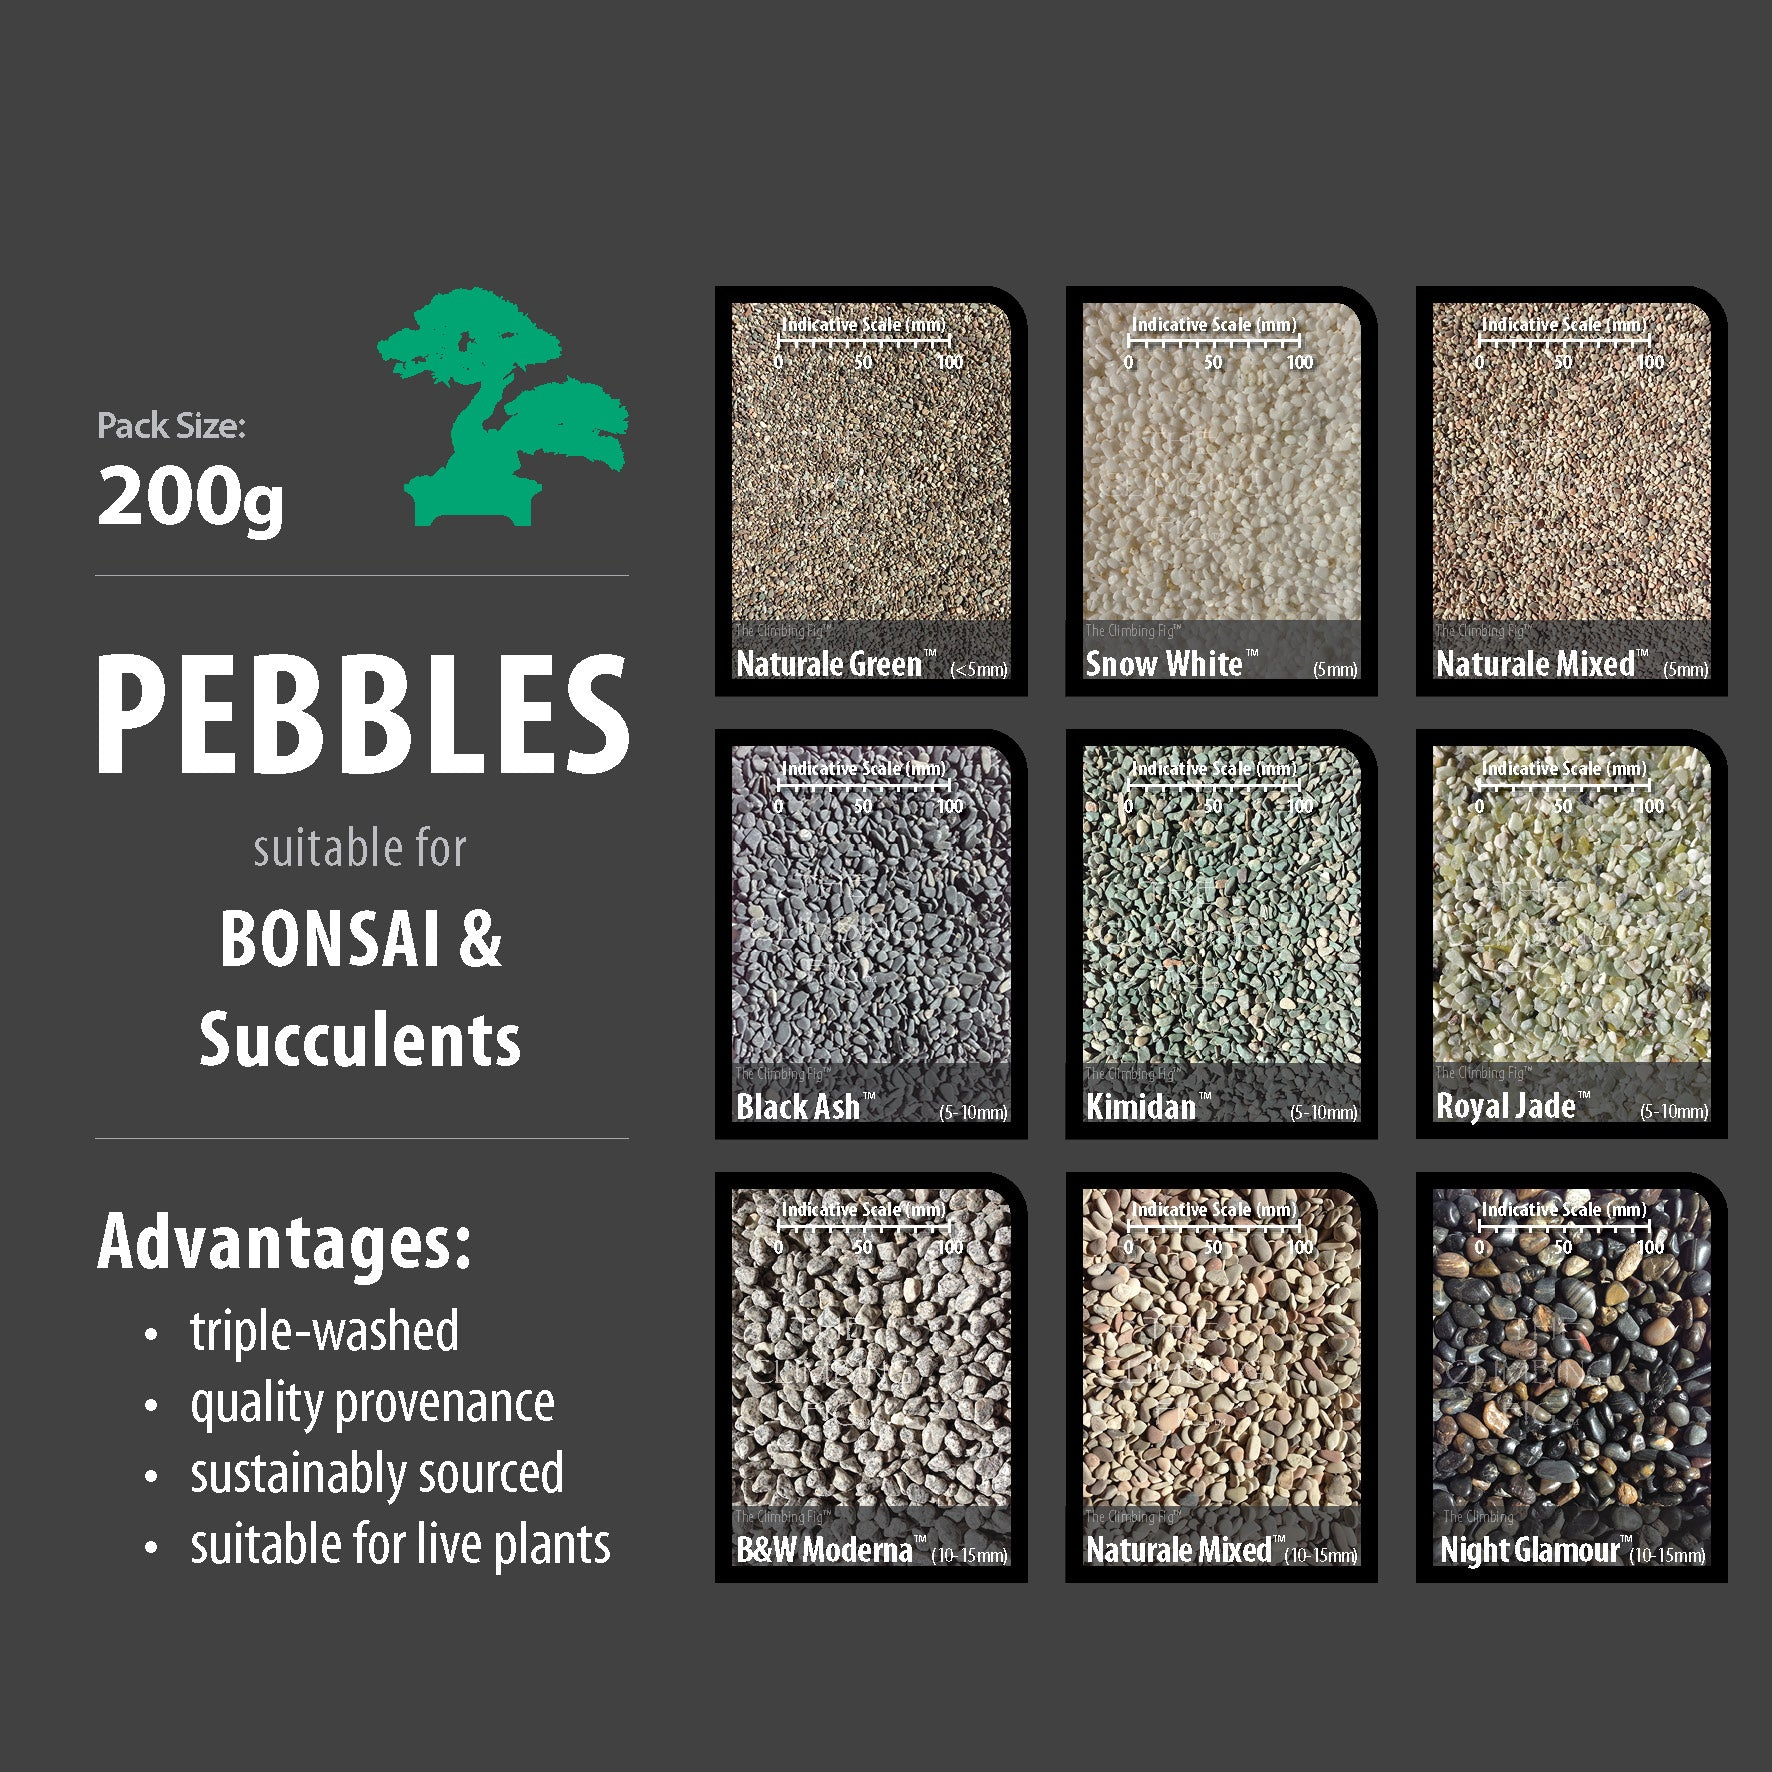 200g Pebbles suitable for Bonsai, Succulents & Terrariums